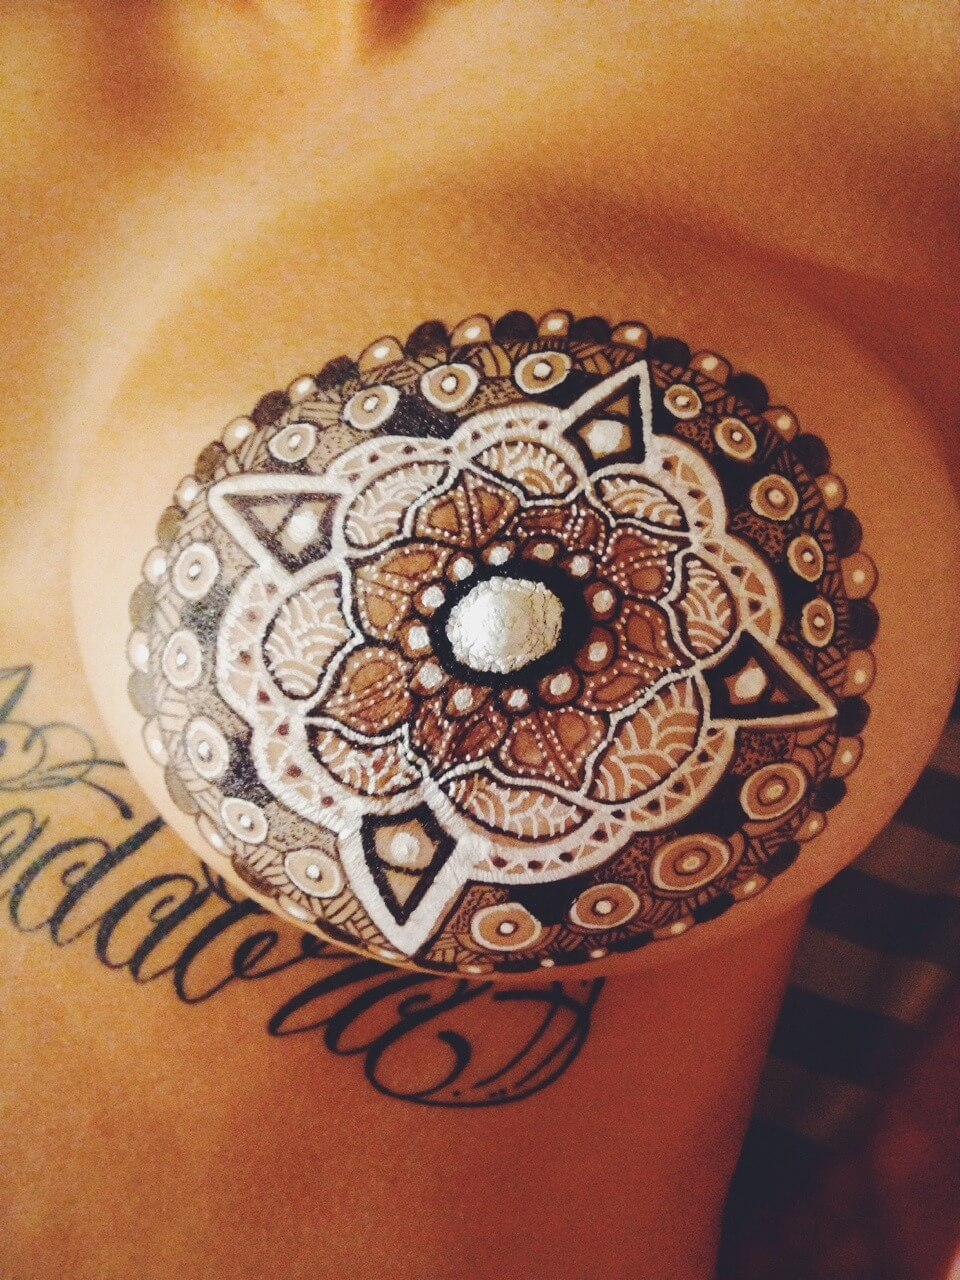 Tattoo Henna Brusttattoo